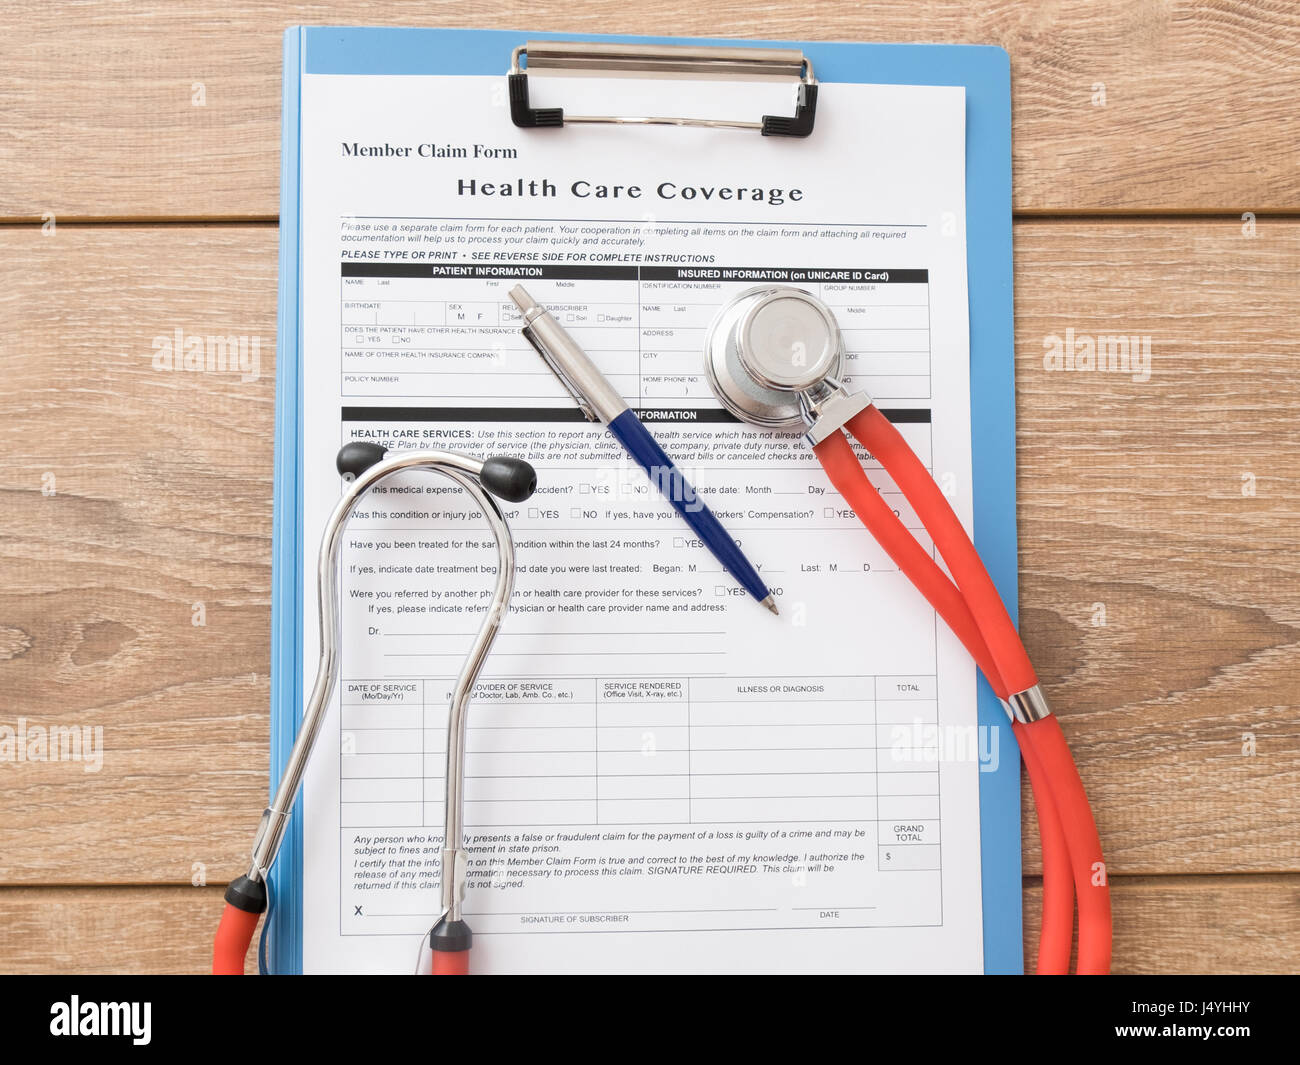 Health care insurance claim form with pen and stethoscope - Stock Image